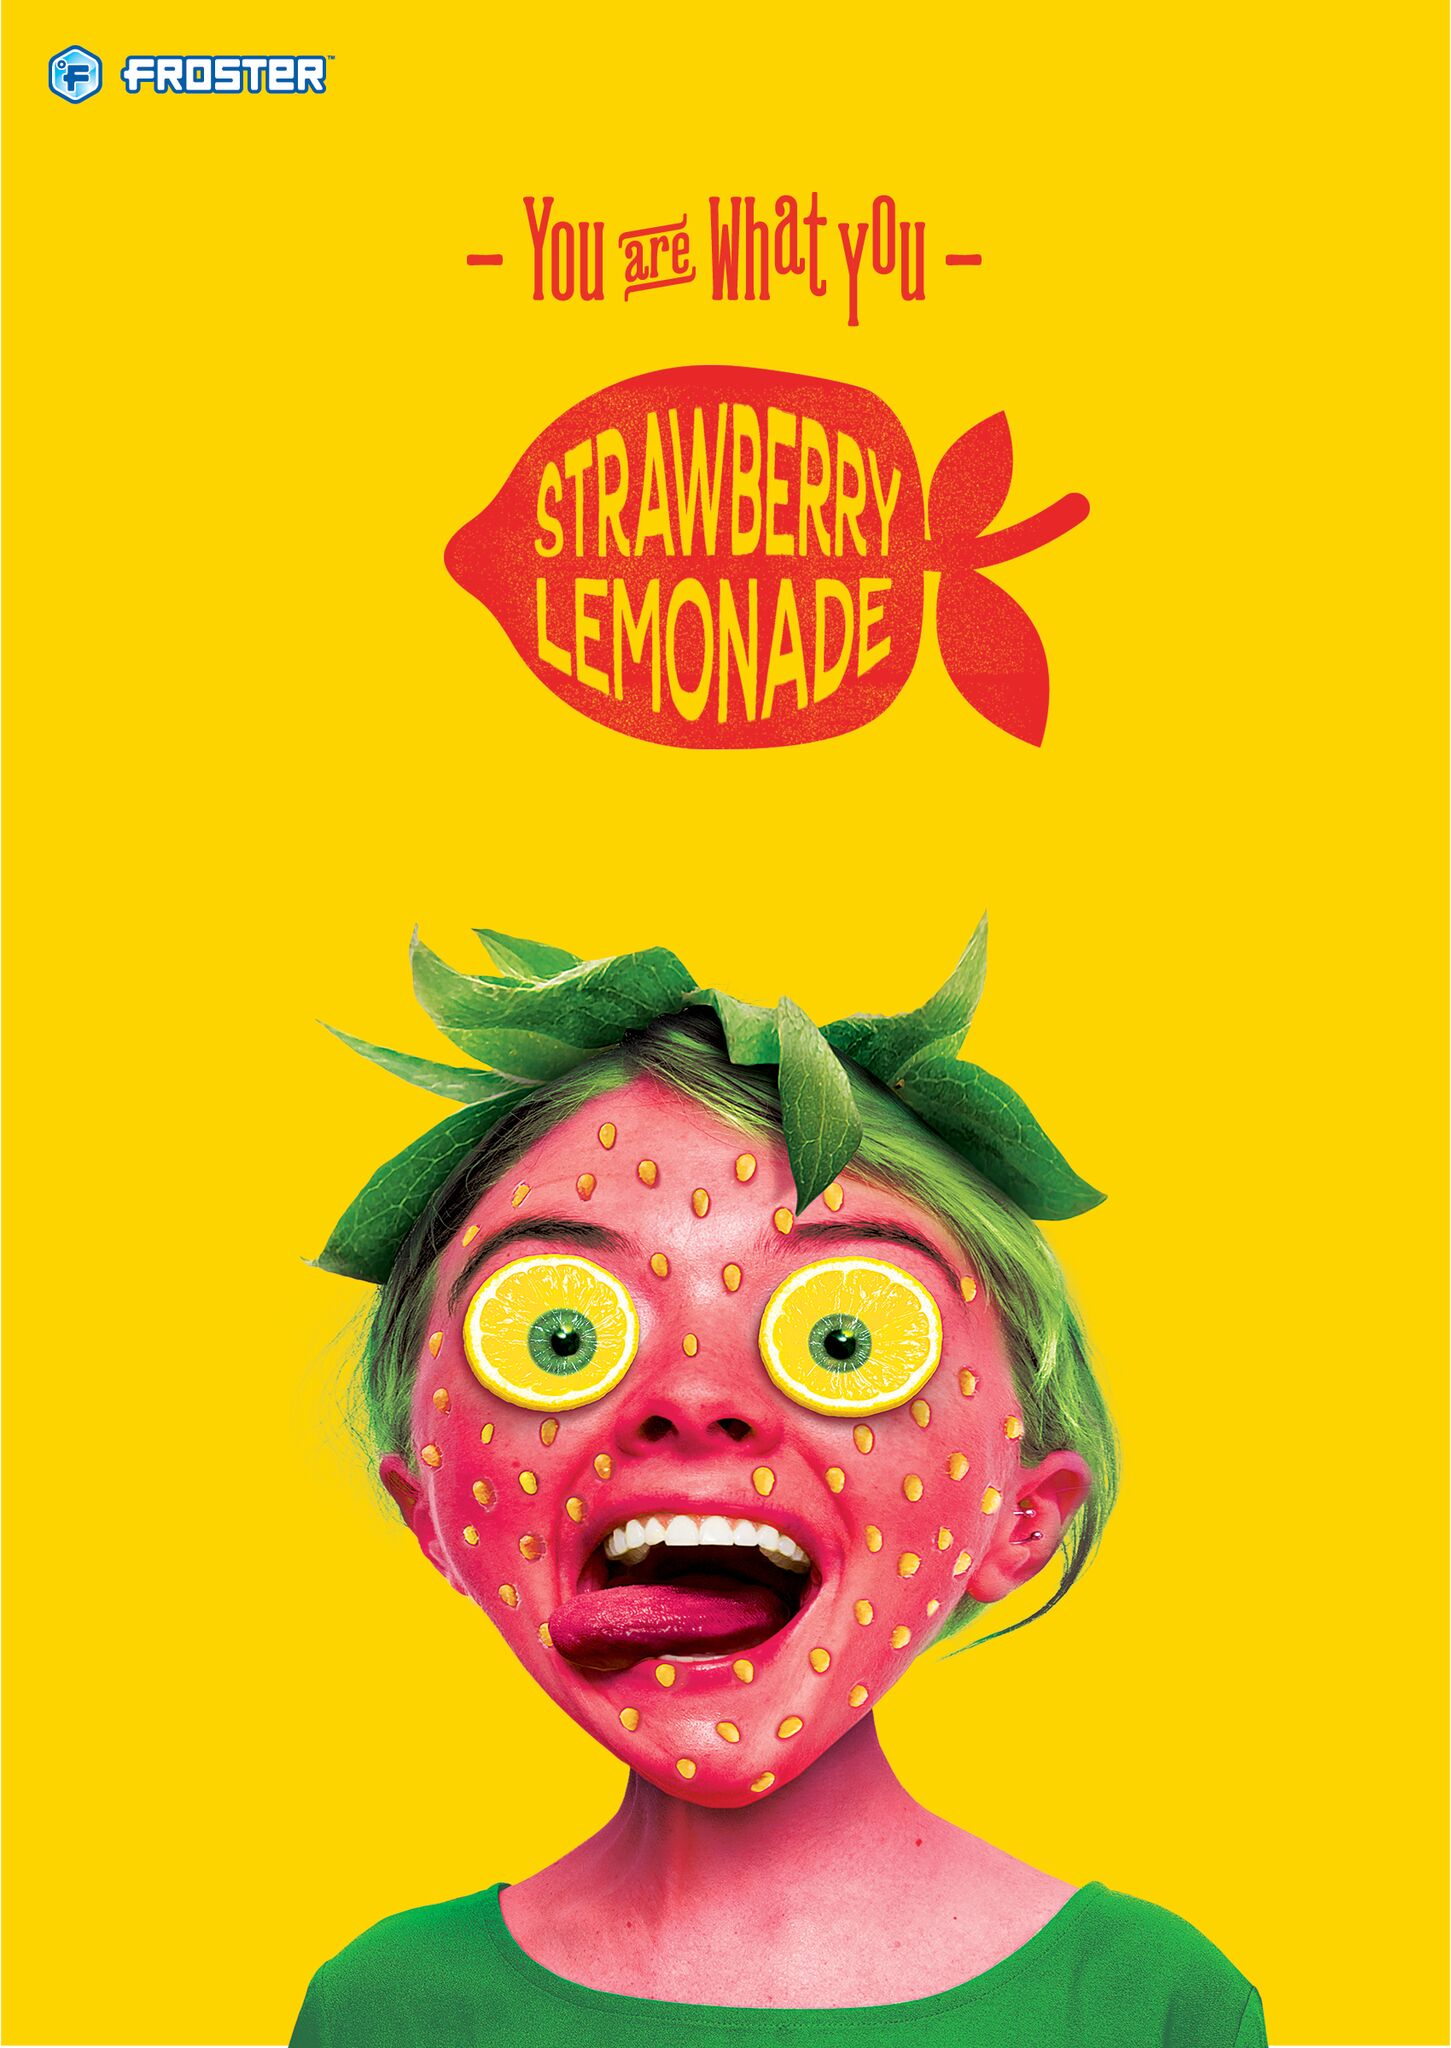 Mac's Froster - strawberry lemonade poster